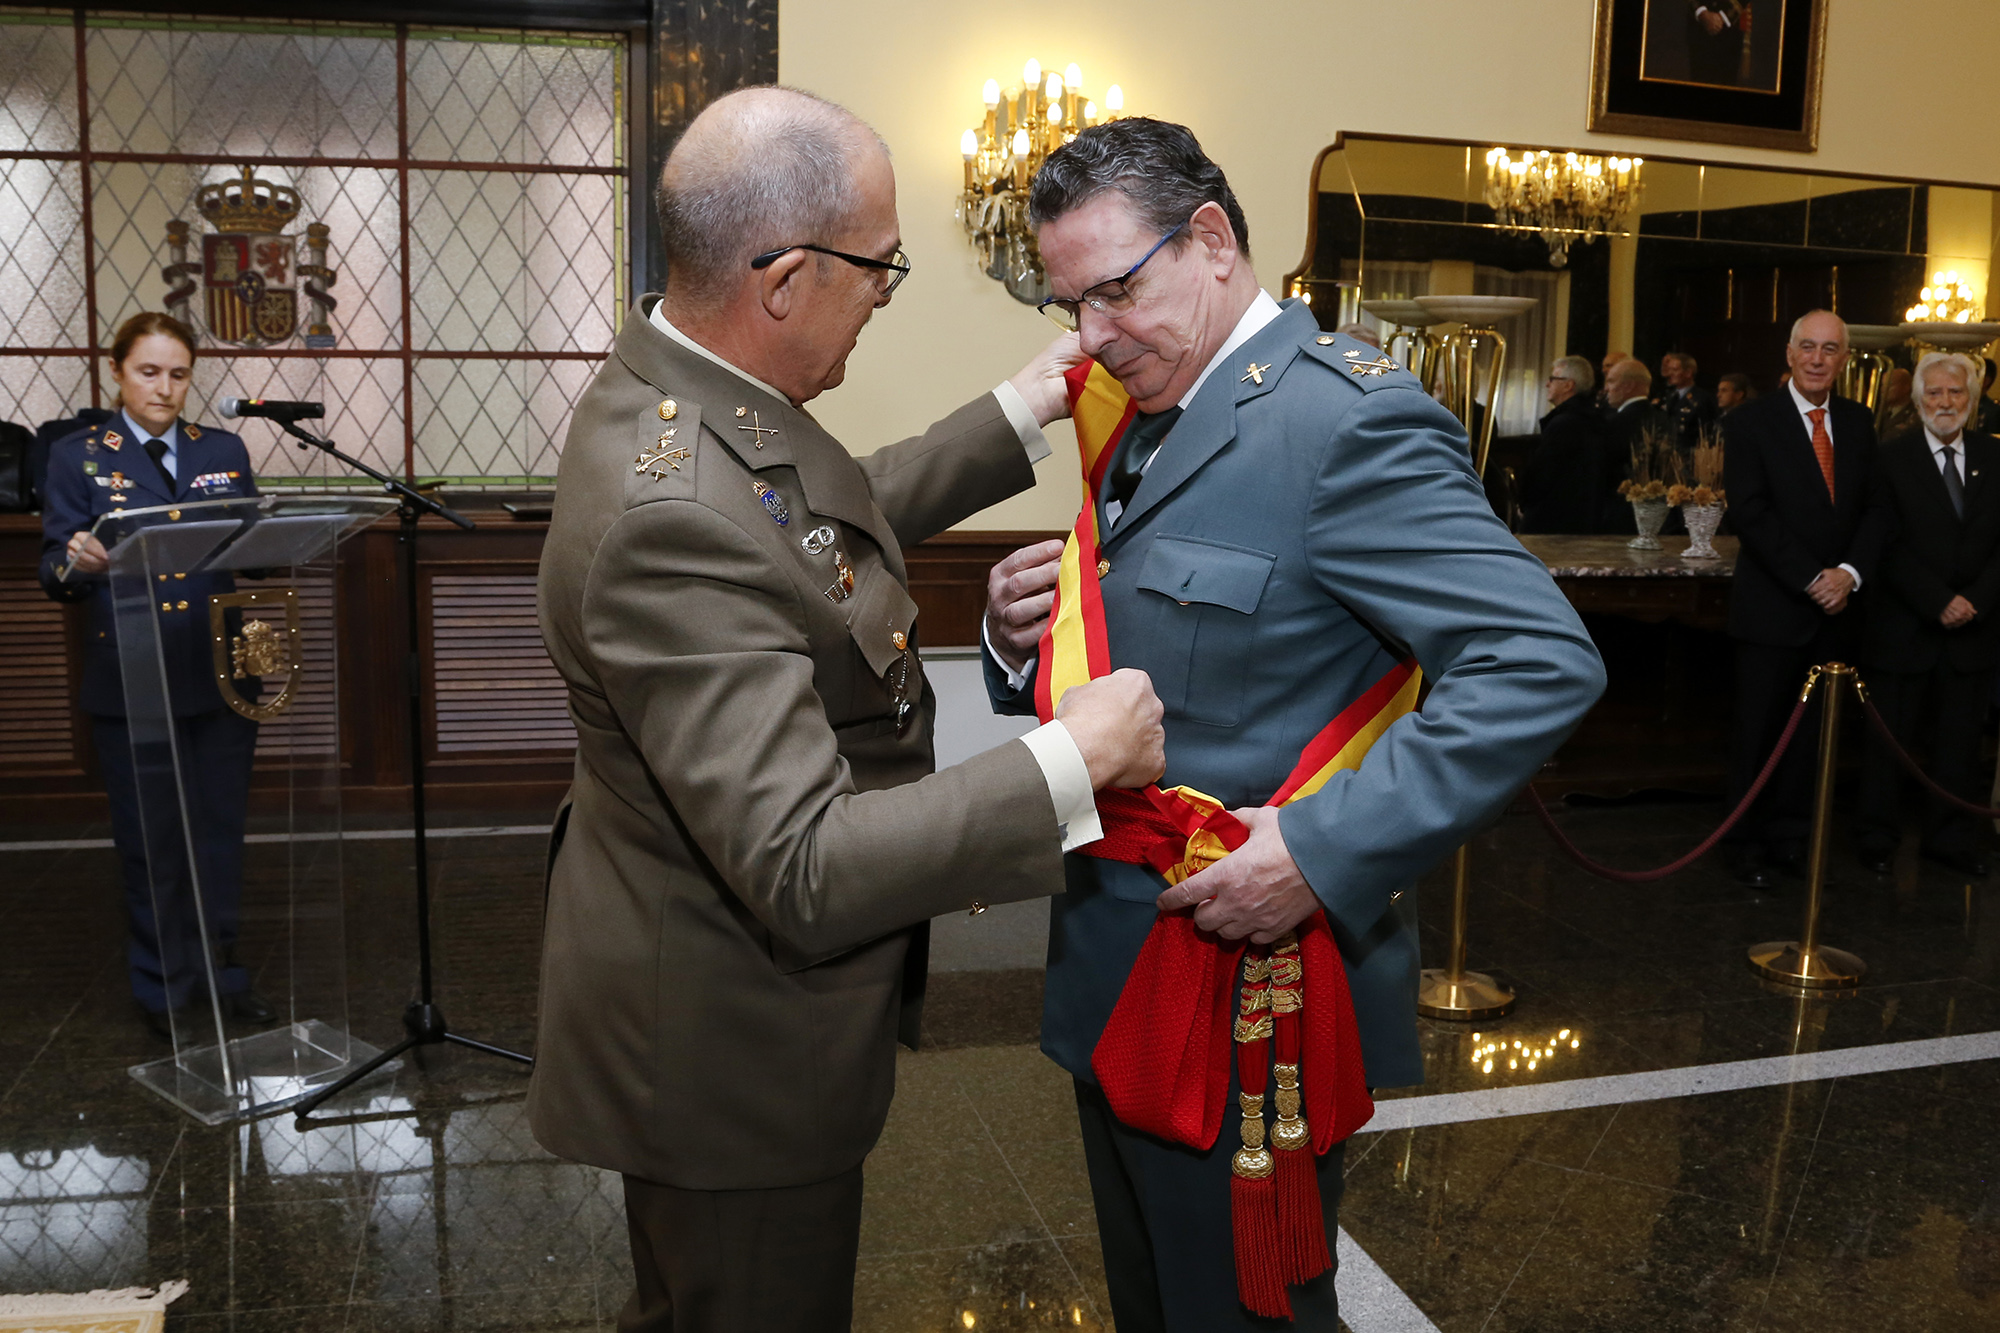 JEMAD awards the Grand Cross of Naval Merit to the Deputy Operational Director of the Spanish Civil Guard